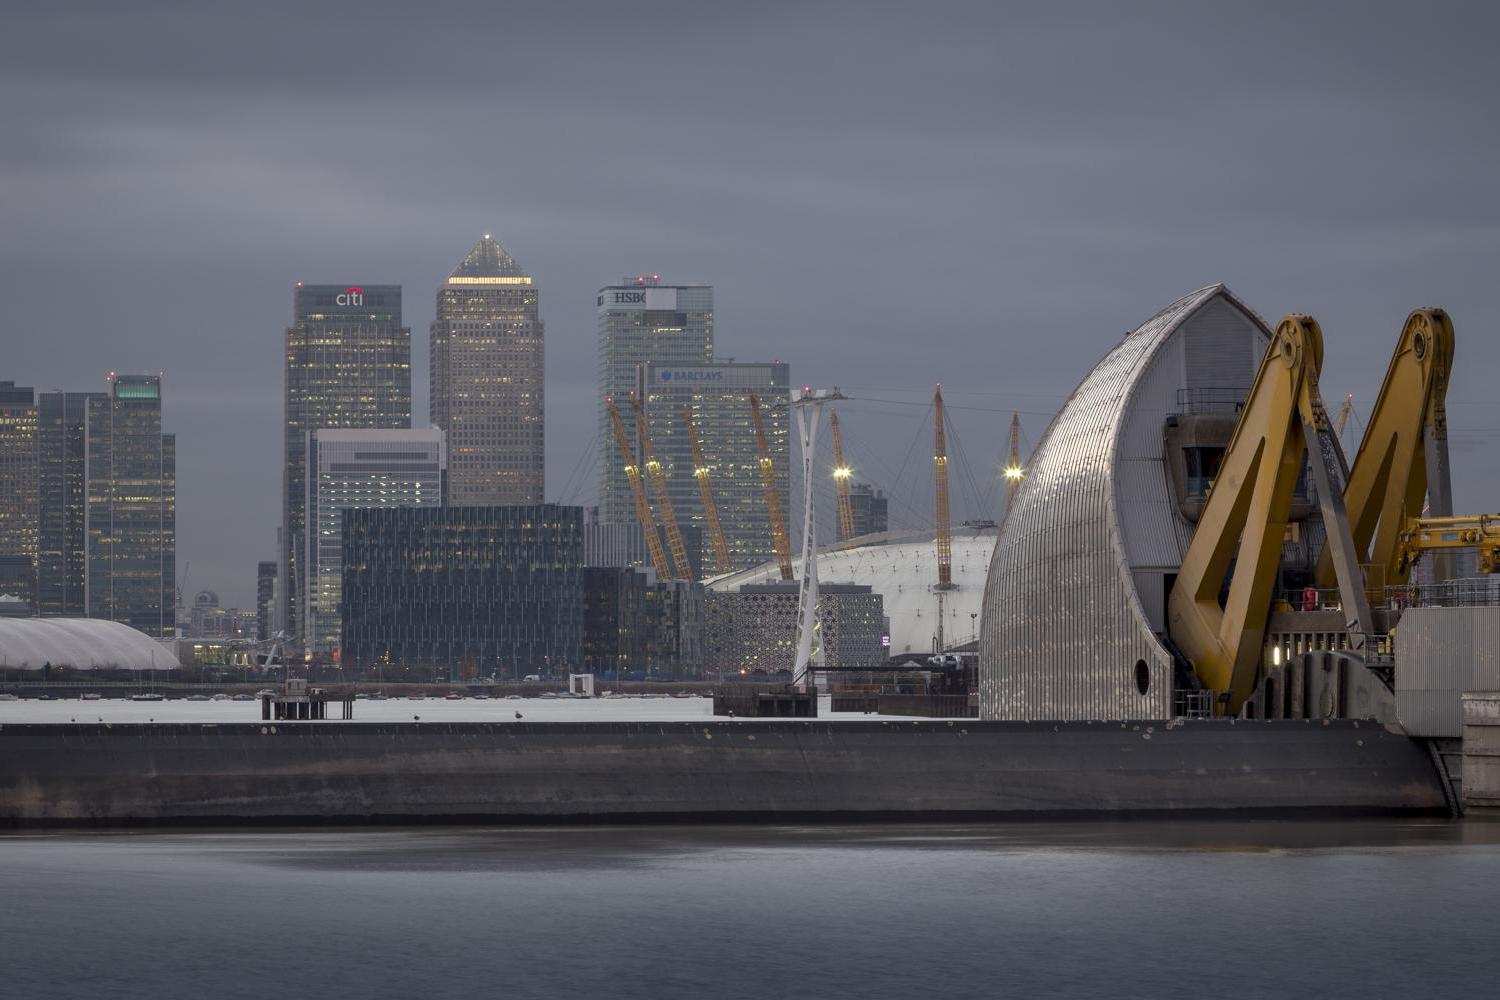 Meet the London cab driver who takes incredible photographs of the capital's landmarks at dawn